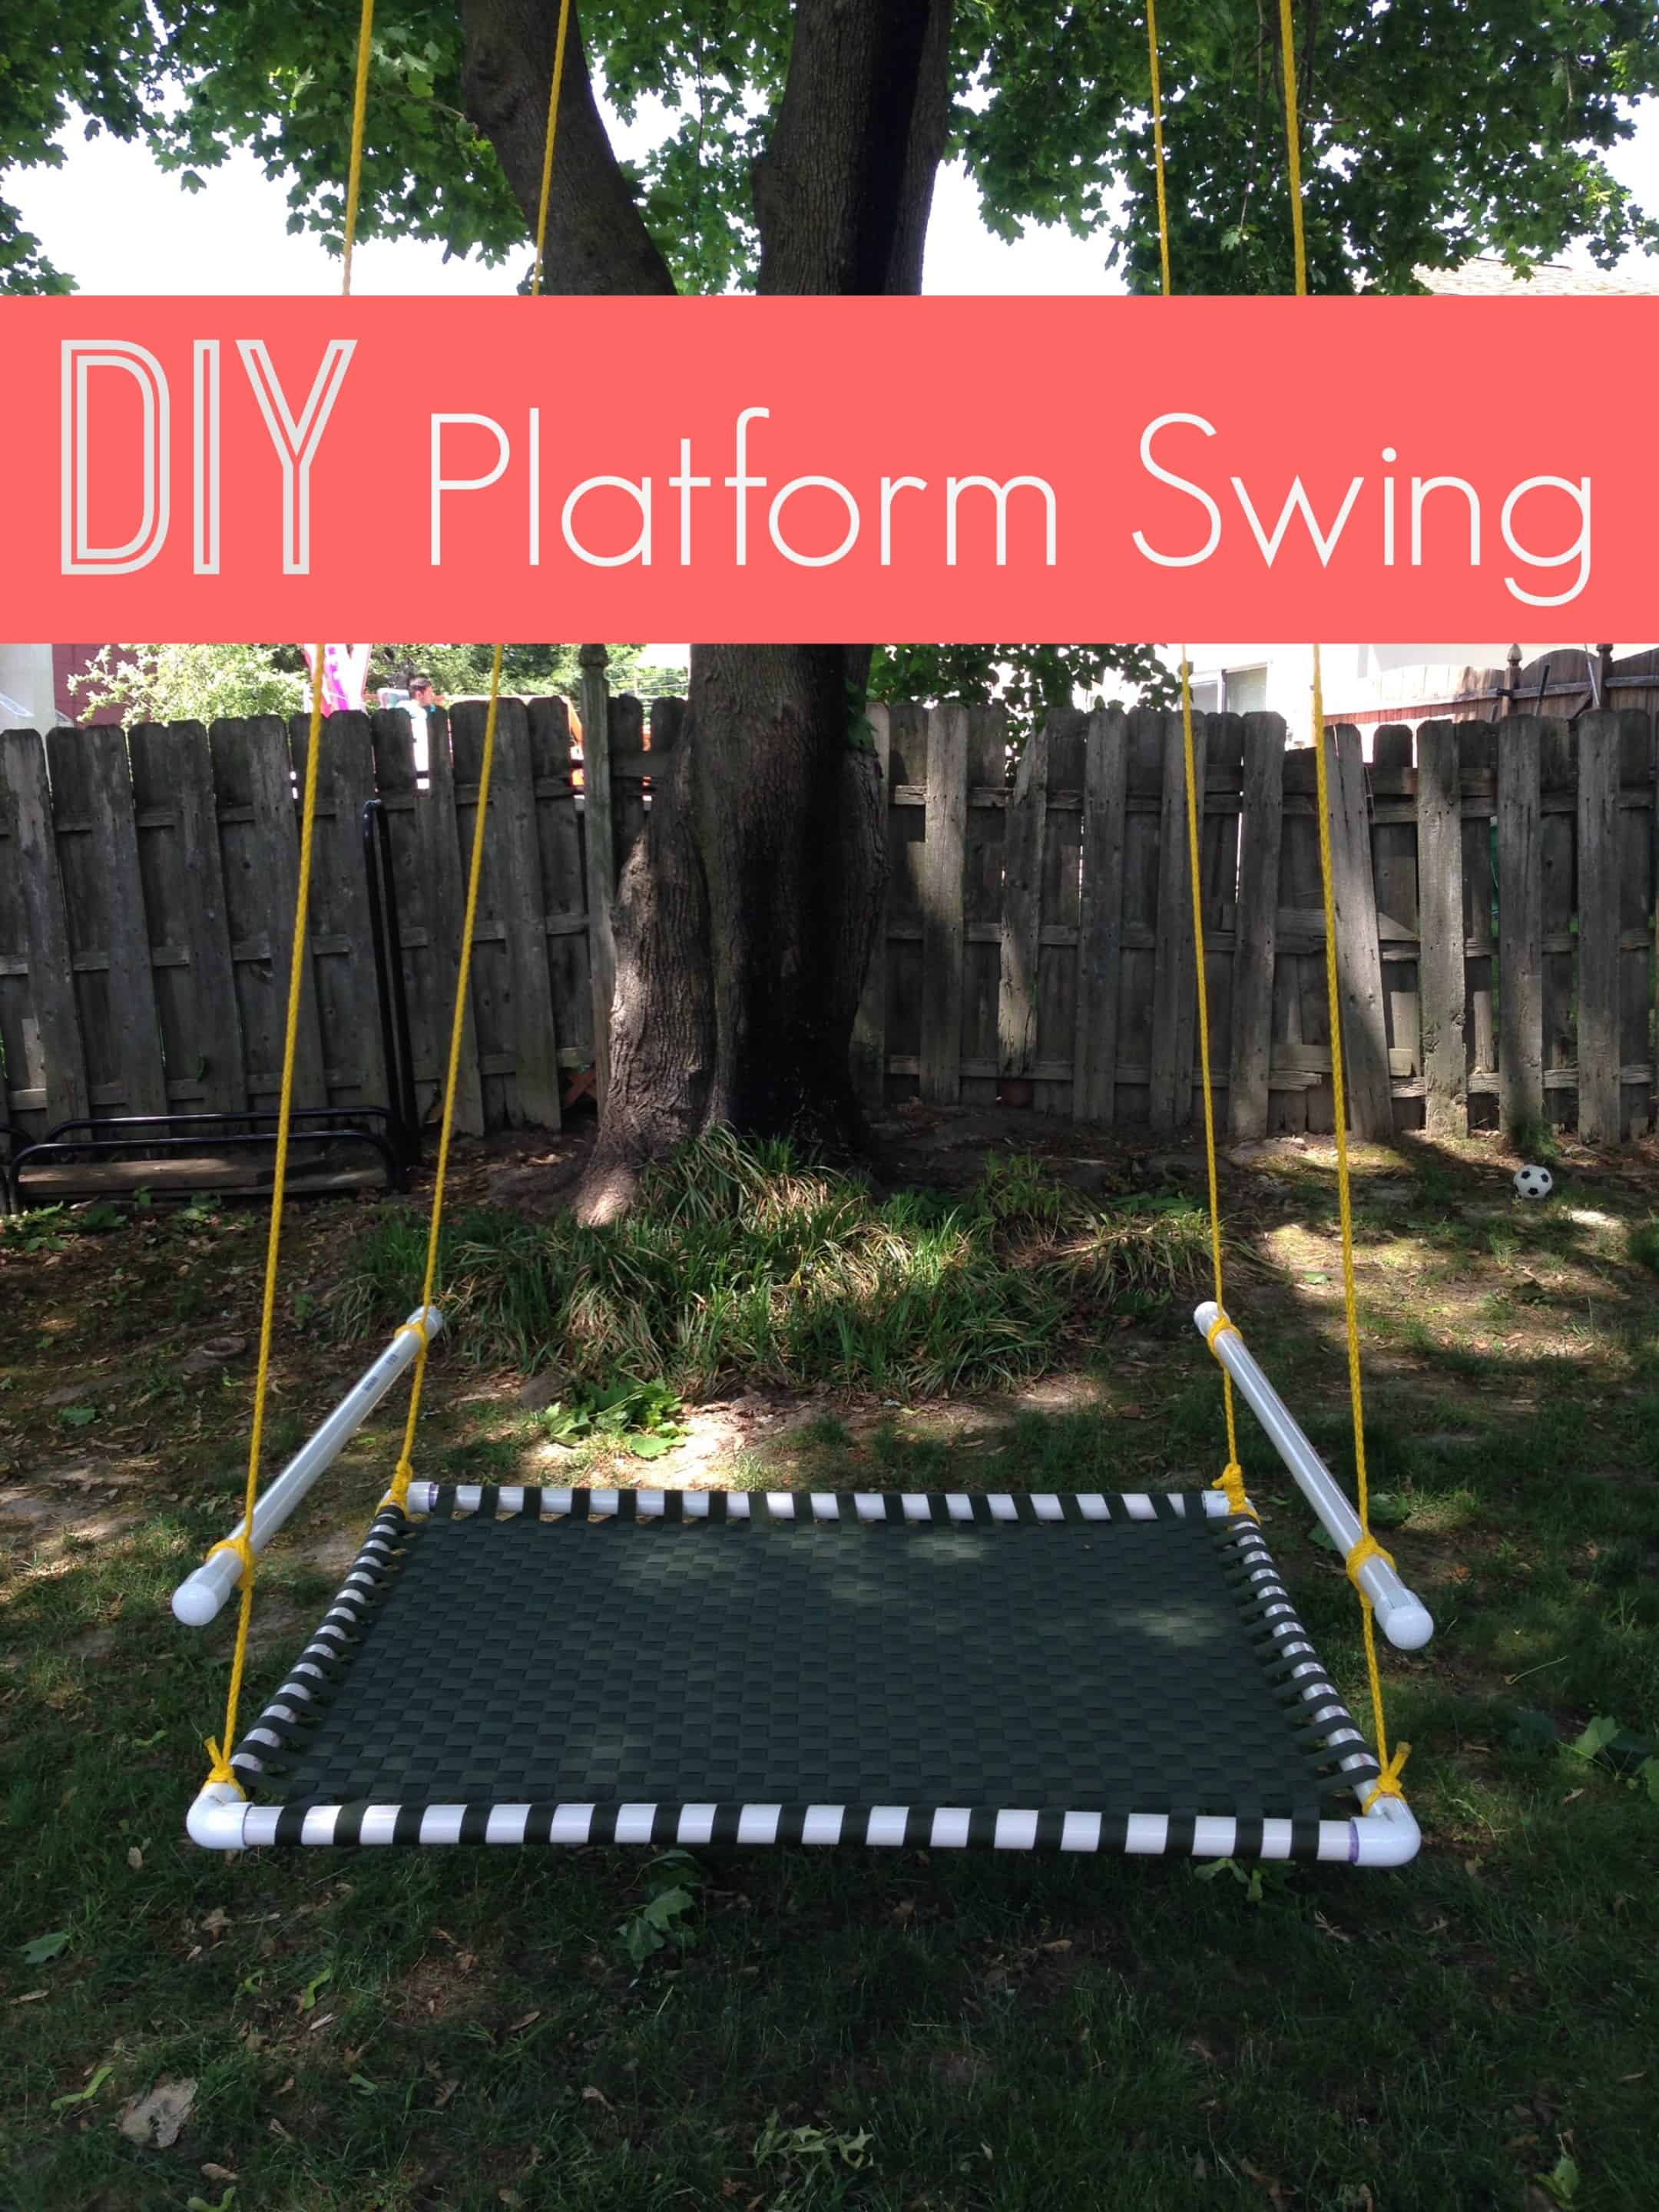 I Love This DIY Platform Swing (via The Naughty Mommy). My Kids Would